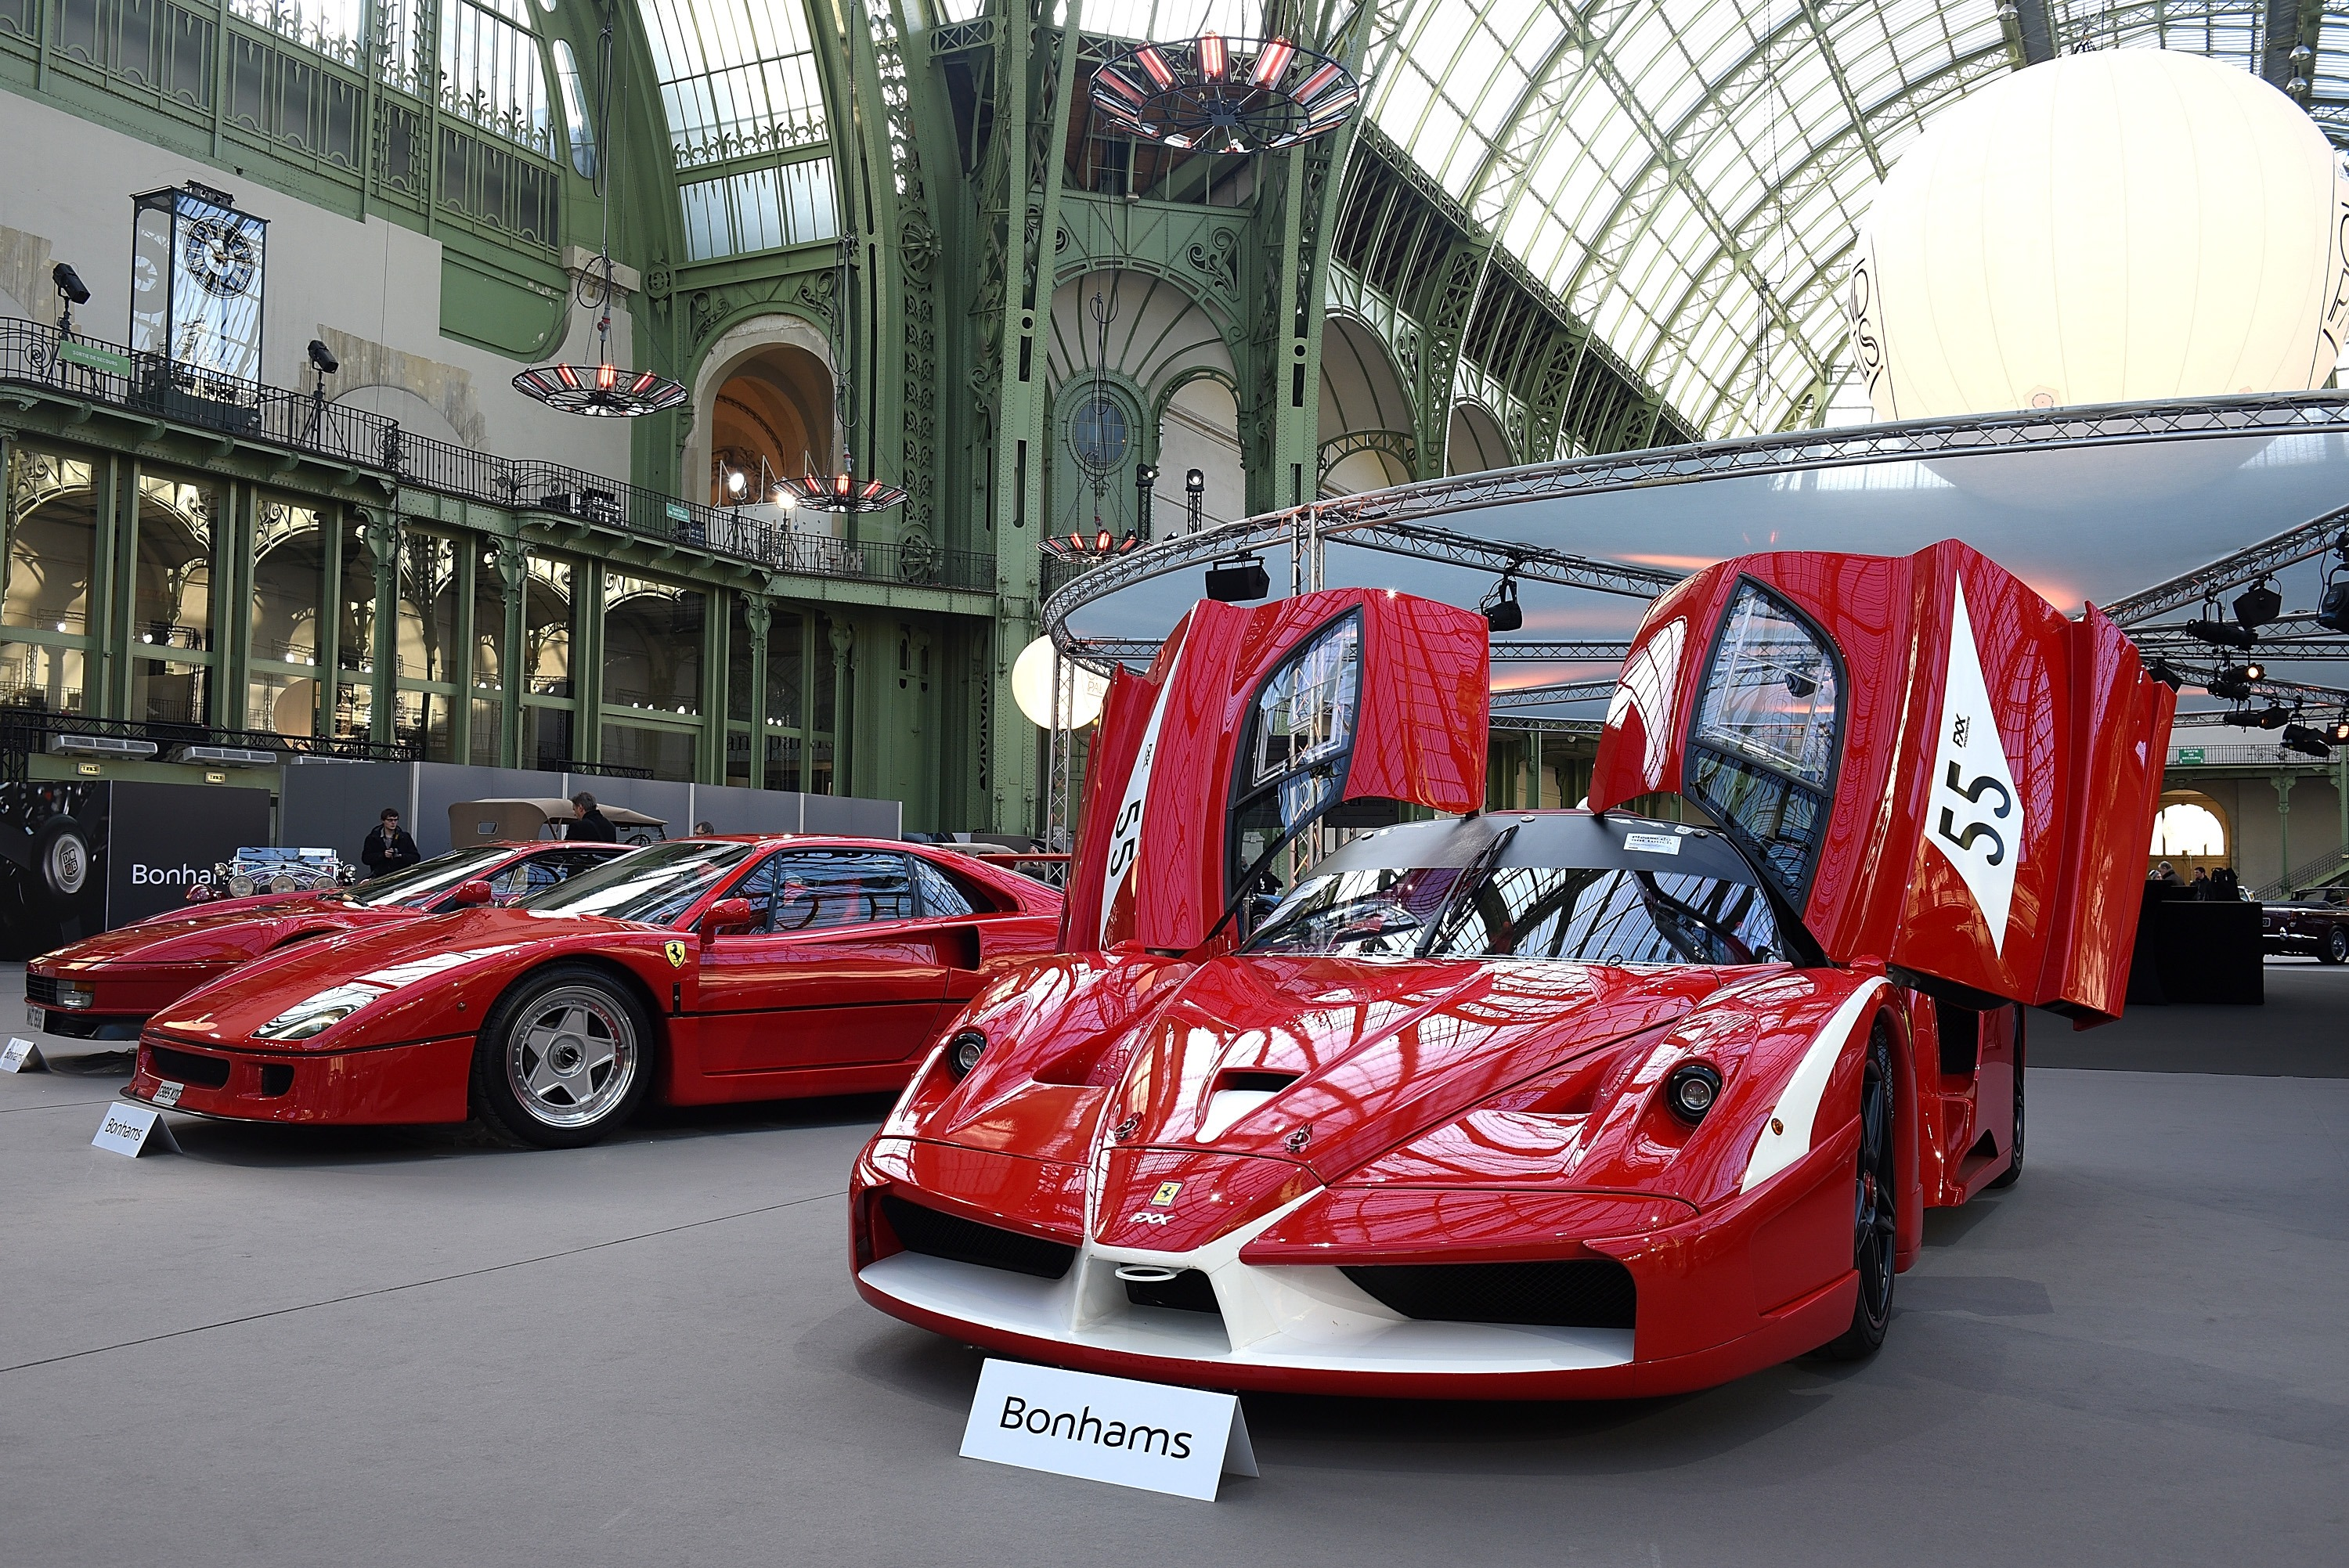 Ferrari FXX Evoluzione: One-Of-A Kind Street-Legal Track Car For Sale